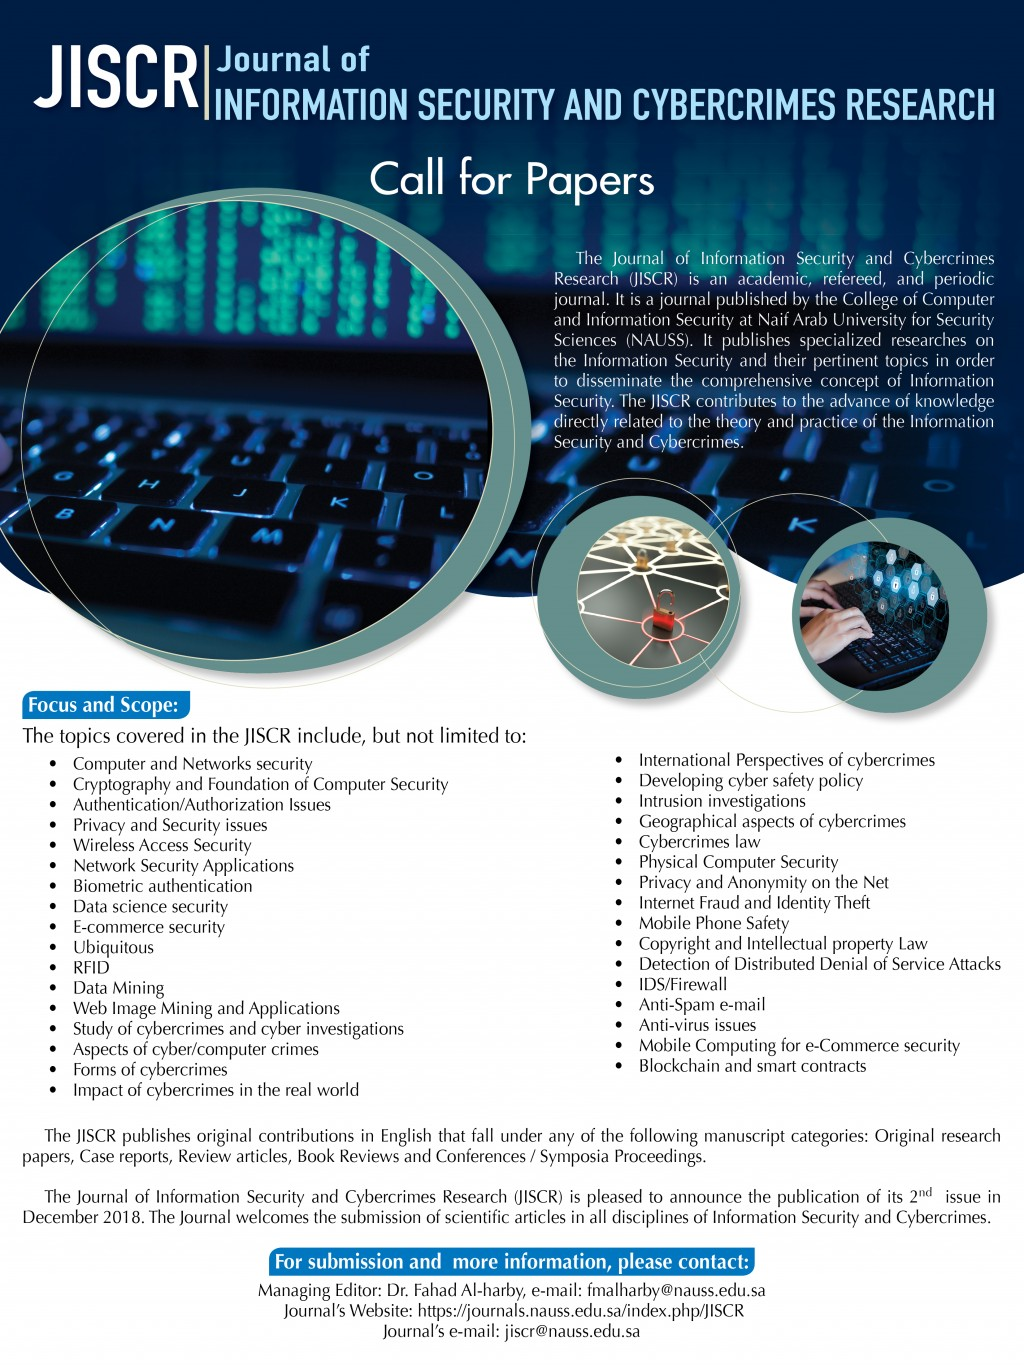 009 Research Paper Call For December Cyber Security Papers Amazing Pdf On Large